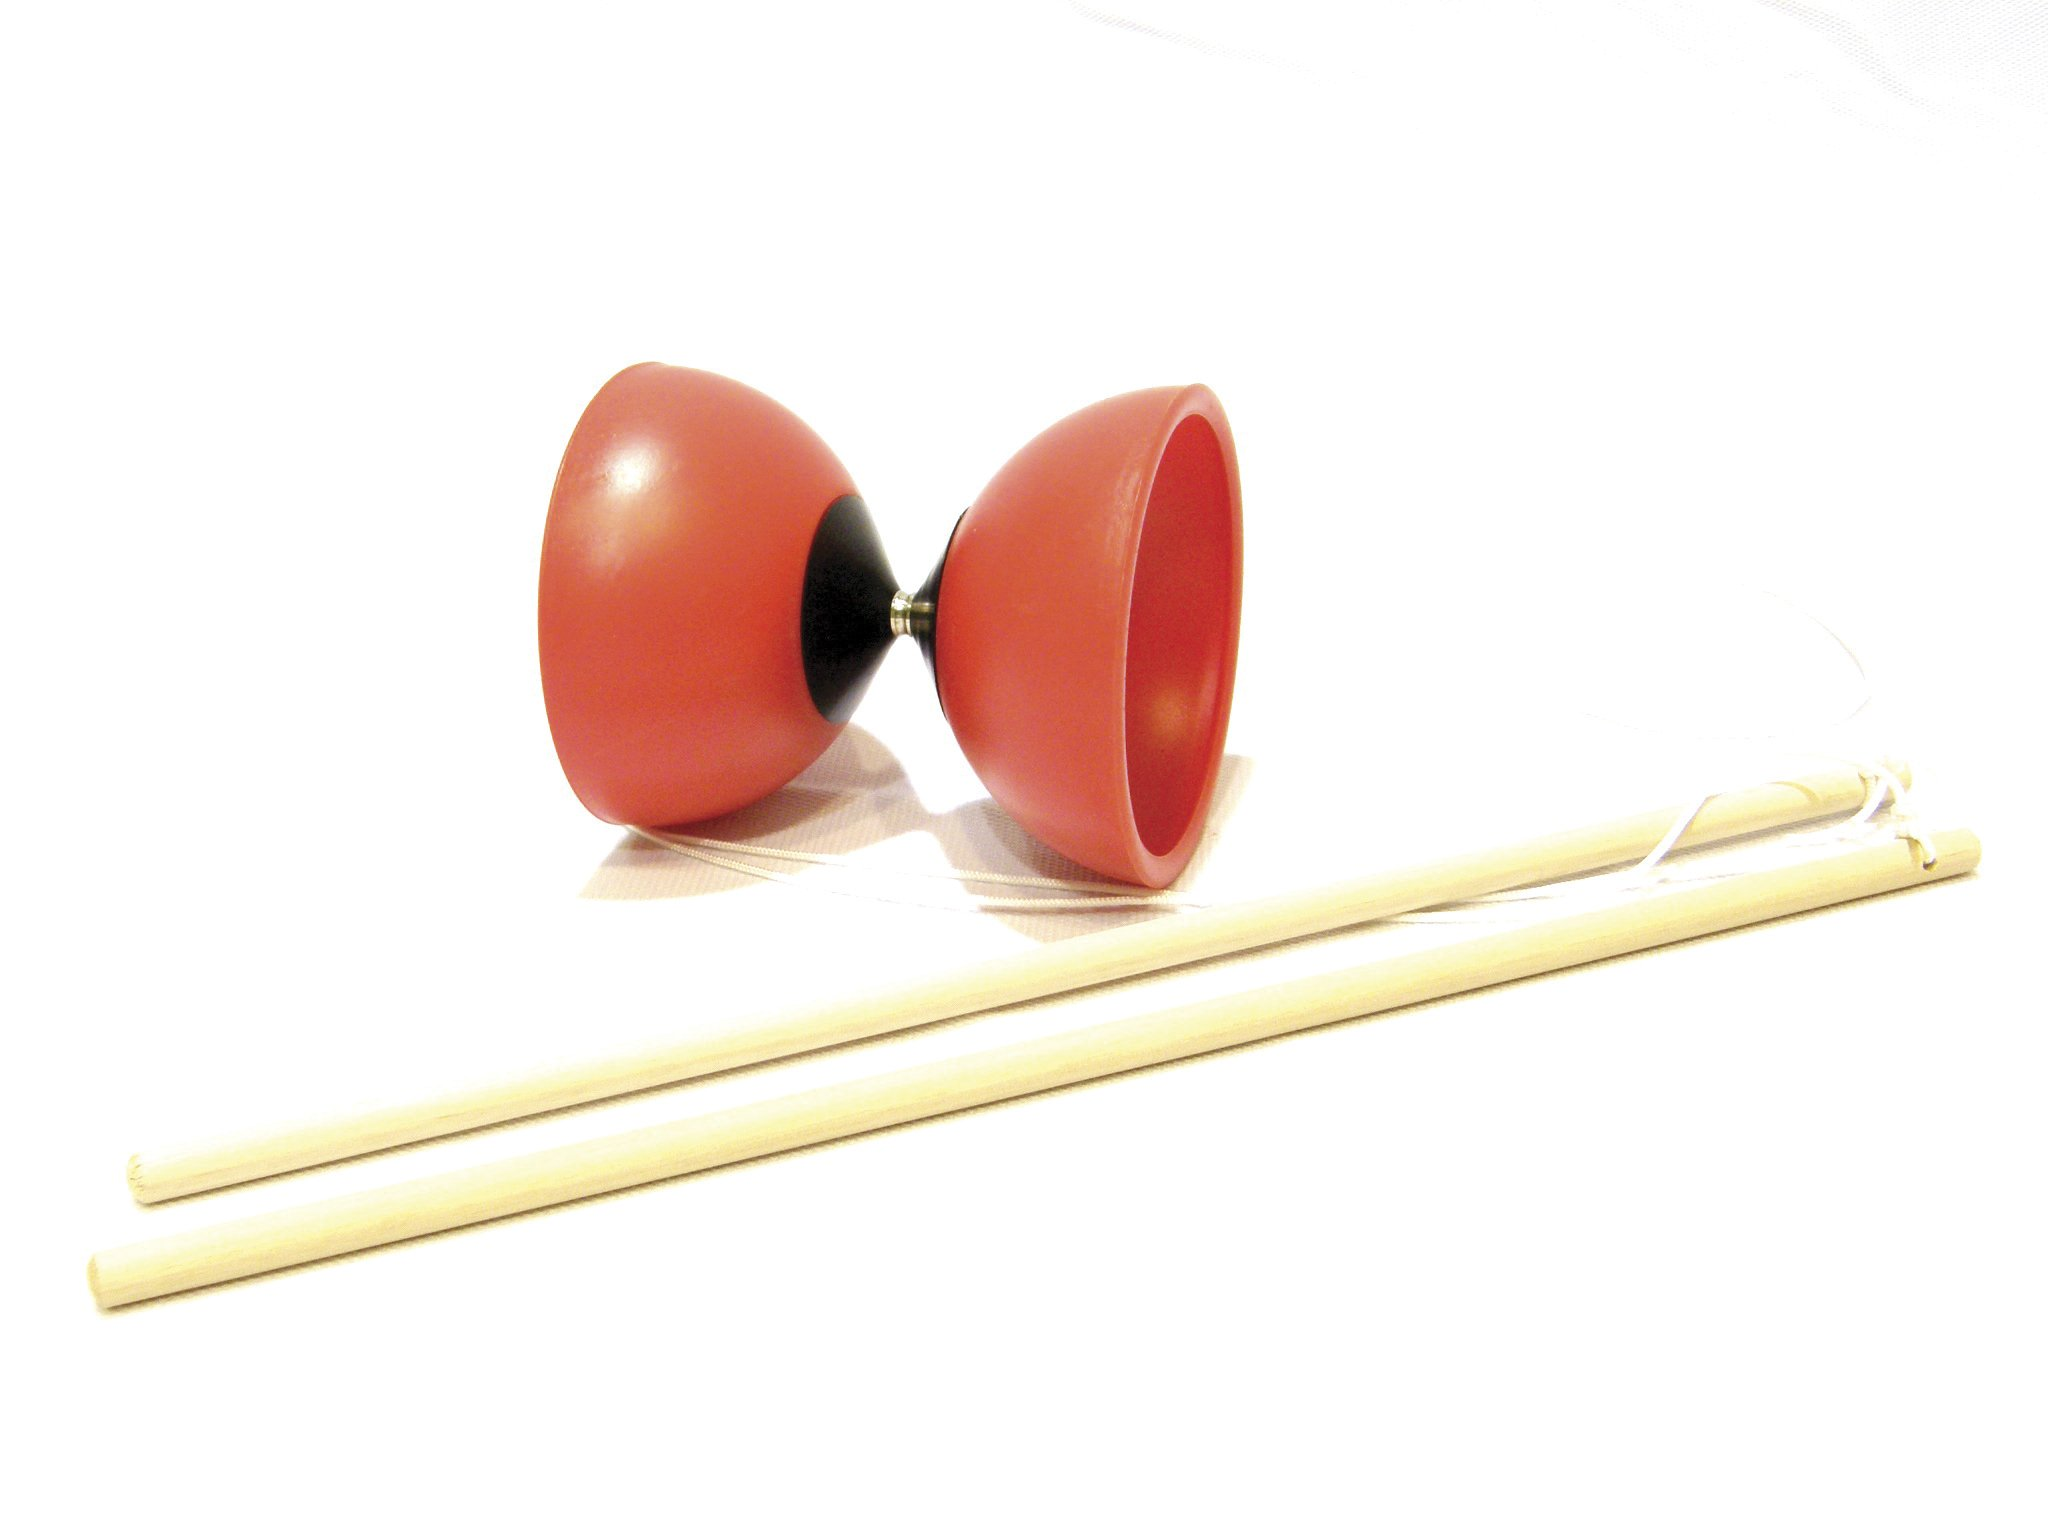 American Educational Products Diabolo Juggling Set